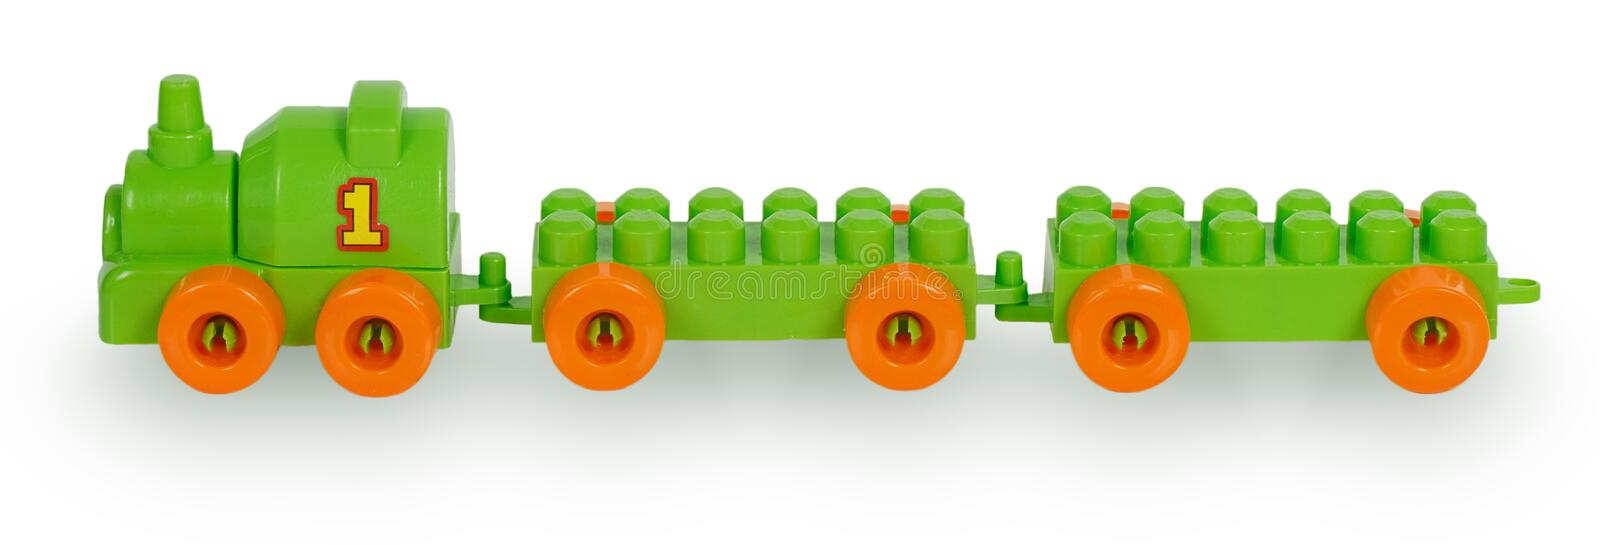 Train of colorful childrens building bricks. Isolated on white background royalty free stock photo